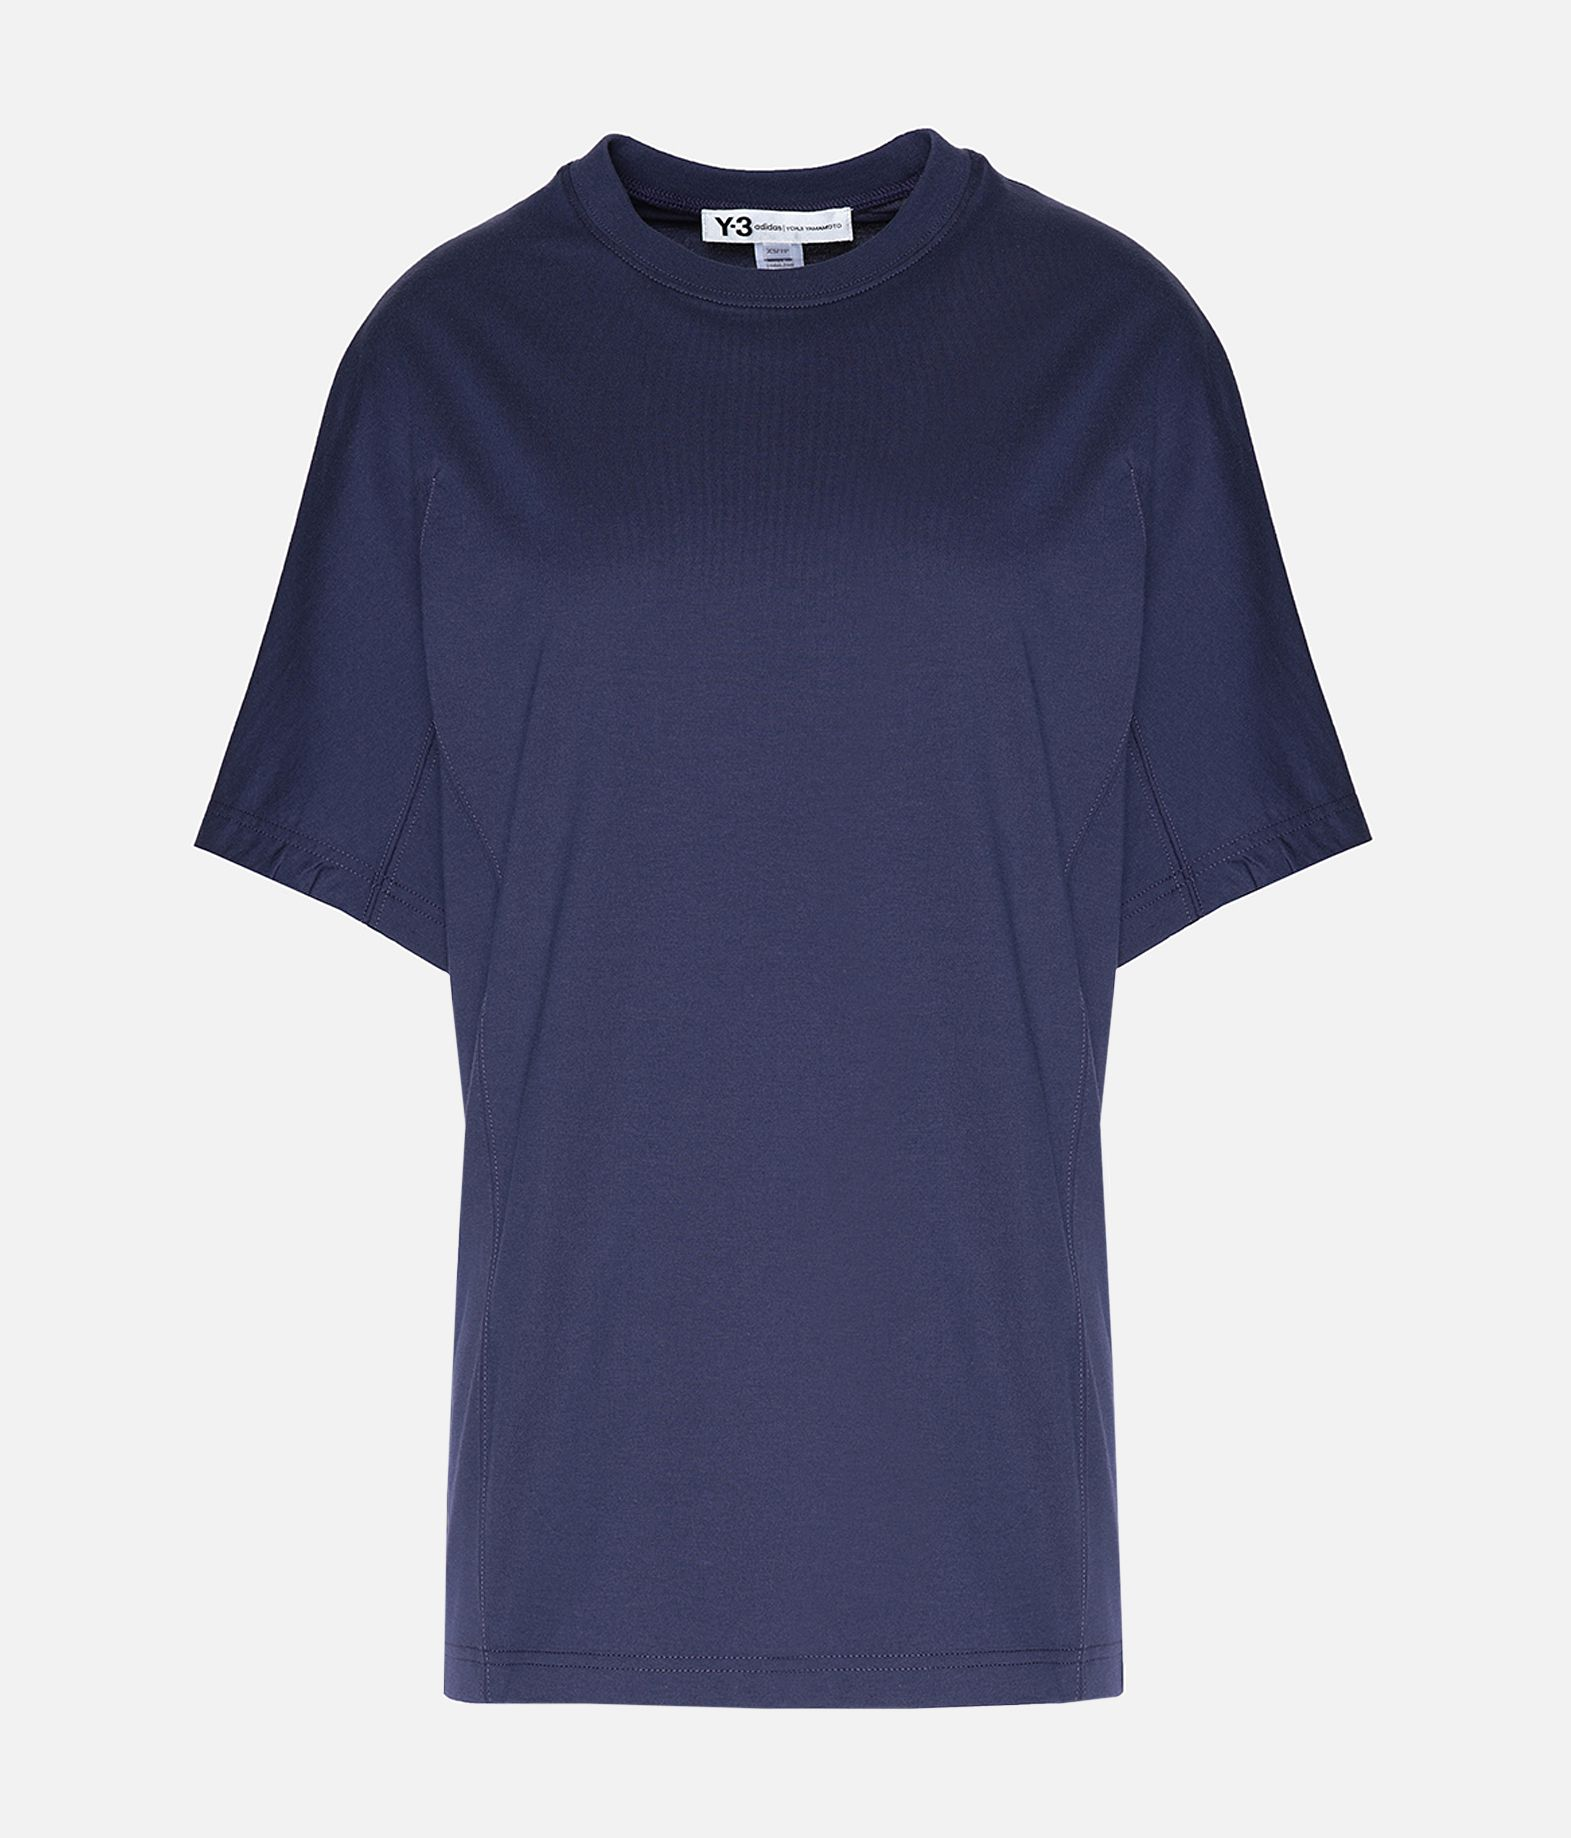 Y-3 Y-3 Classic Crewneck Tee Short sleeve t-shirt Woman f